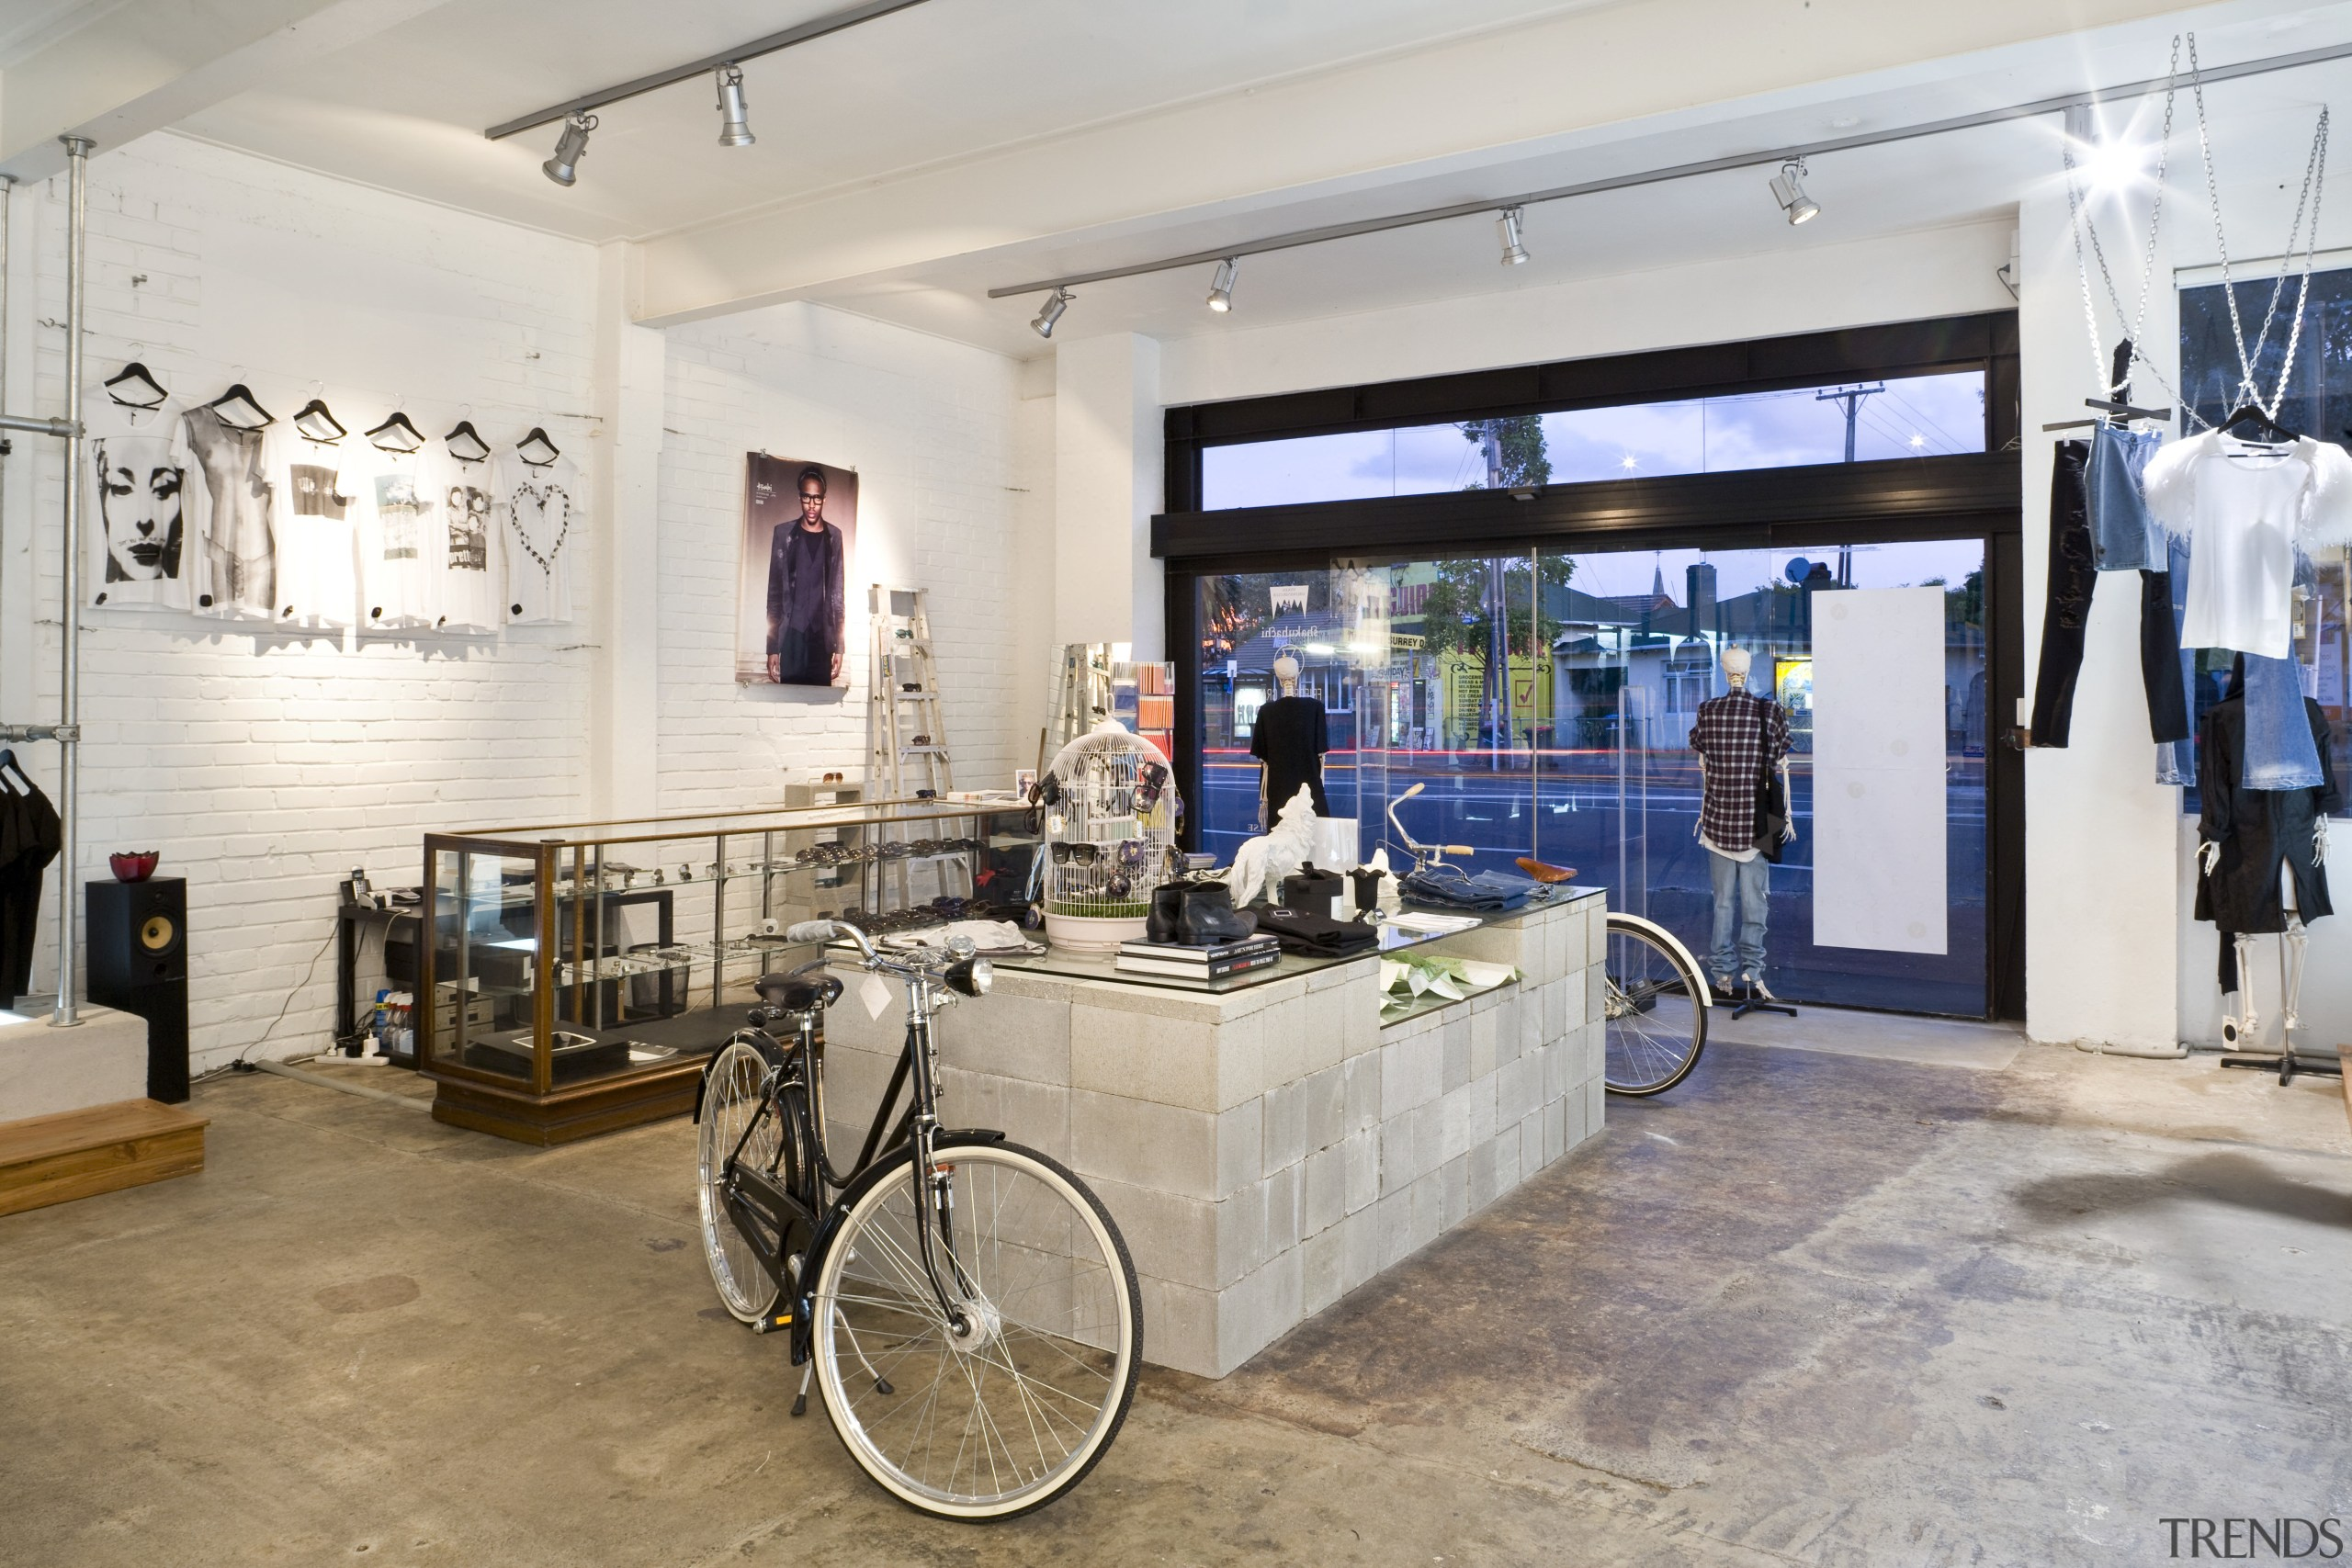 Interior view of the clothing displays at the interior design, gray